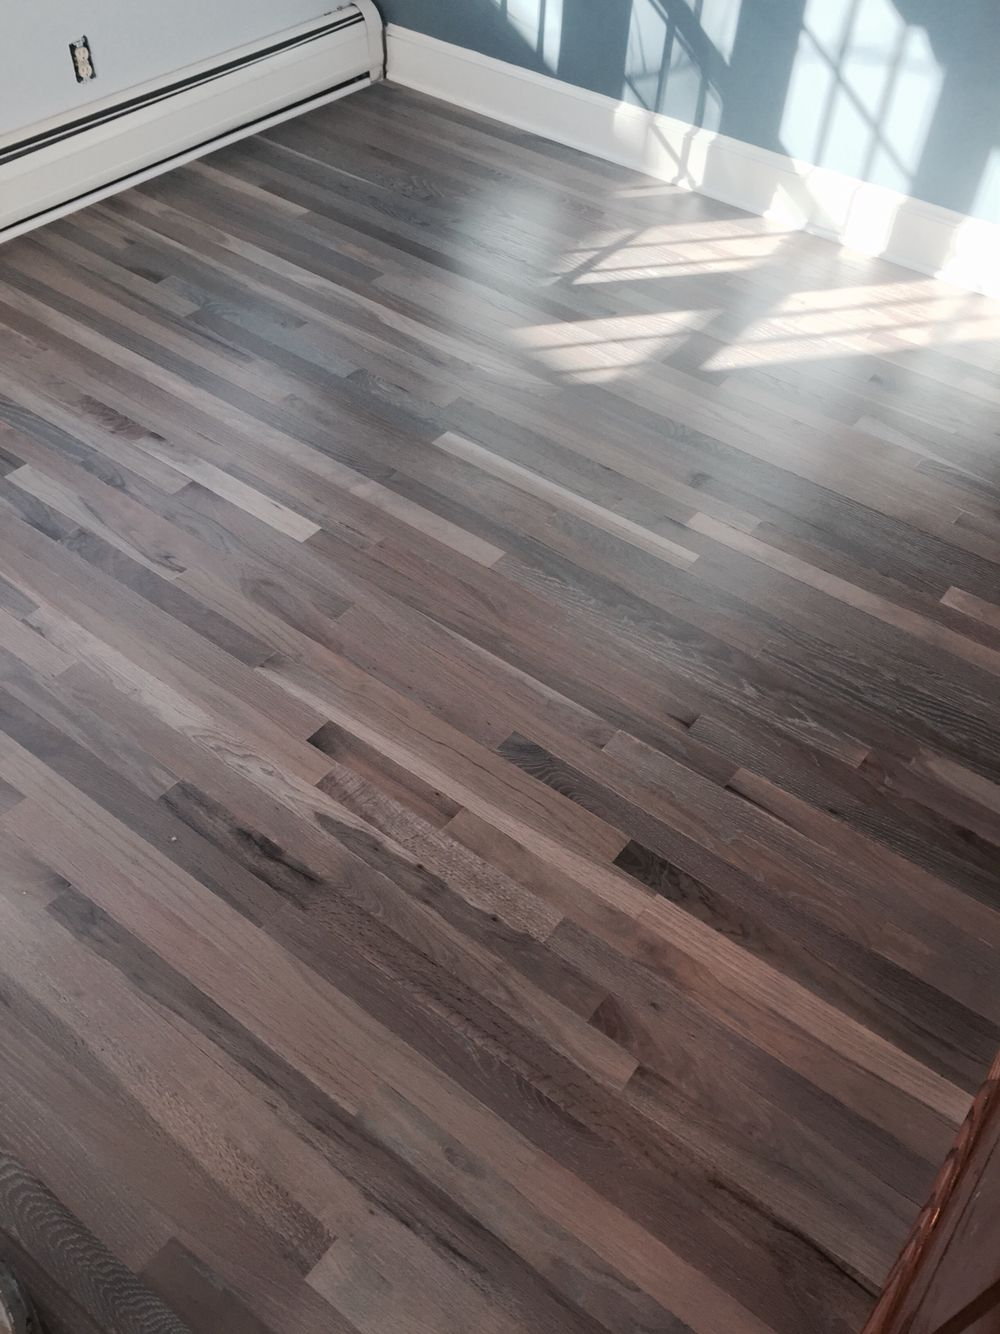 Refinished Red Oak Flooring With Rubio Fumed And 5 White Floor Oil